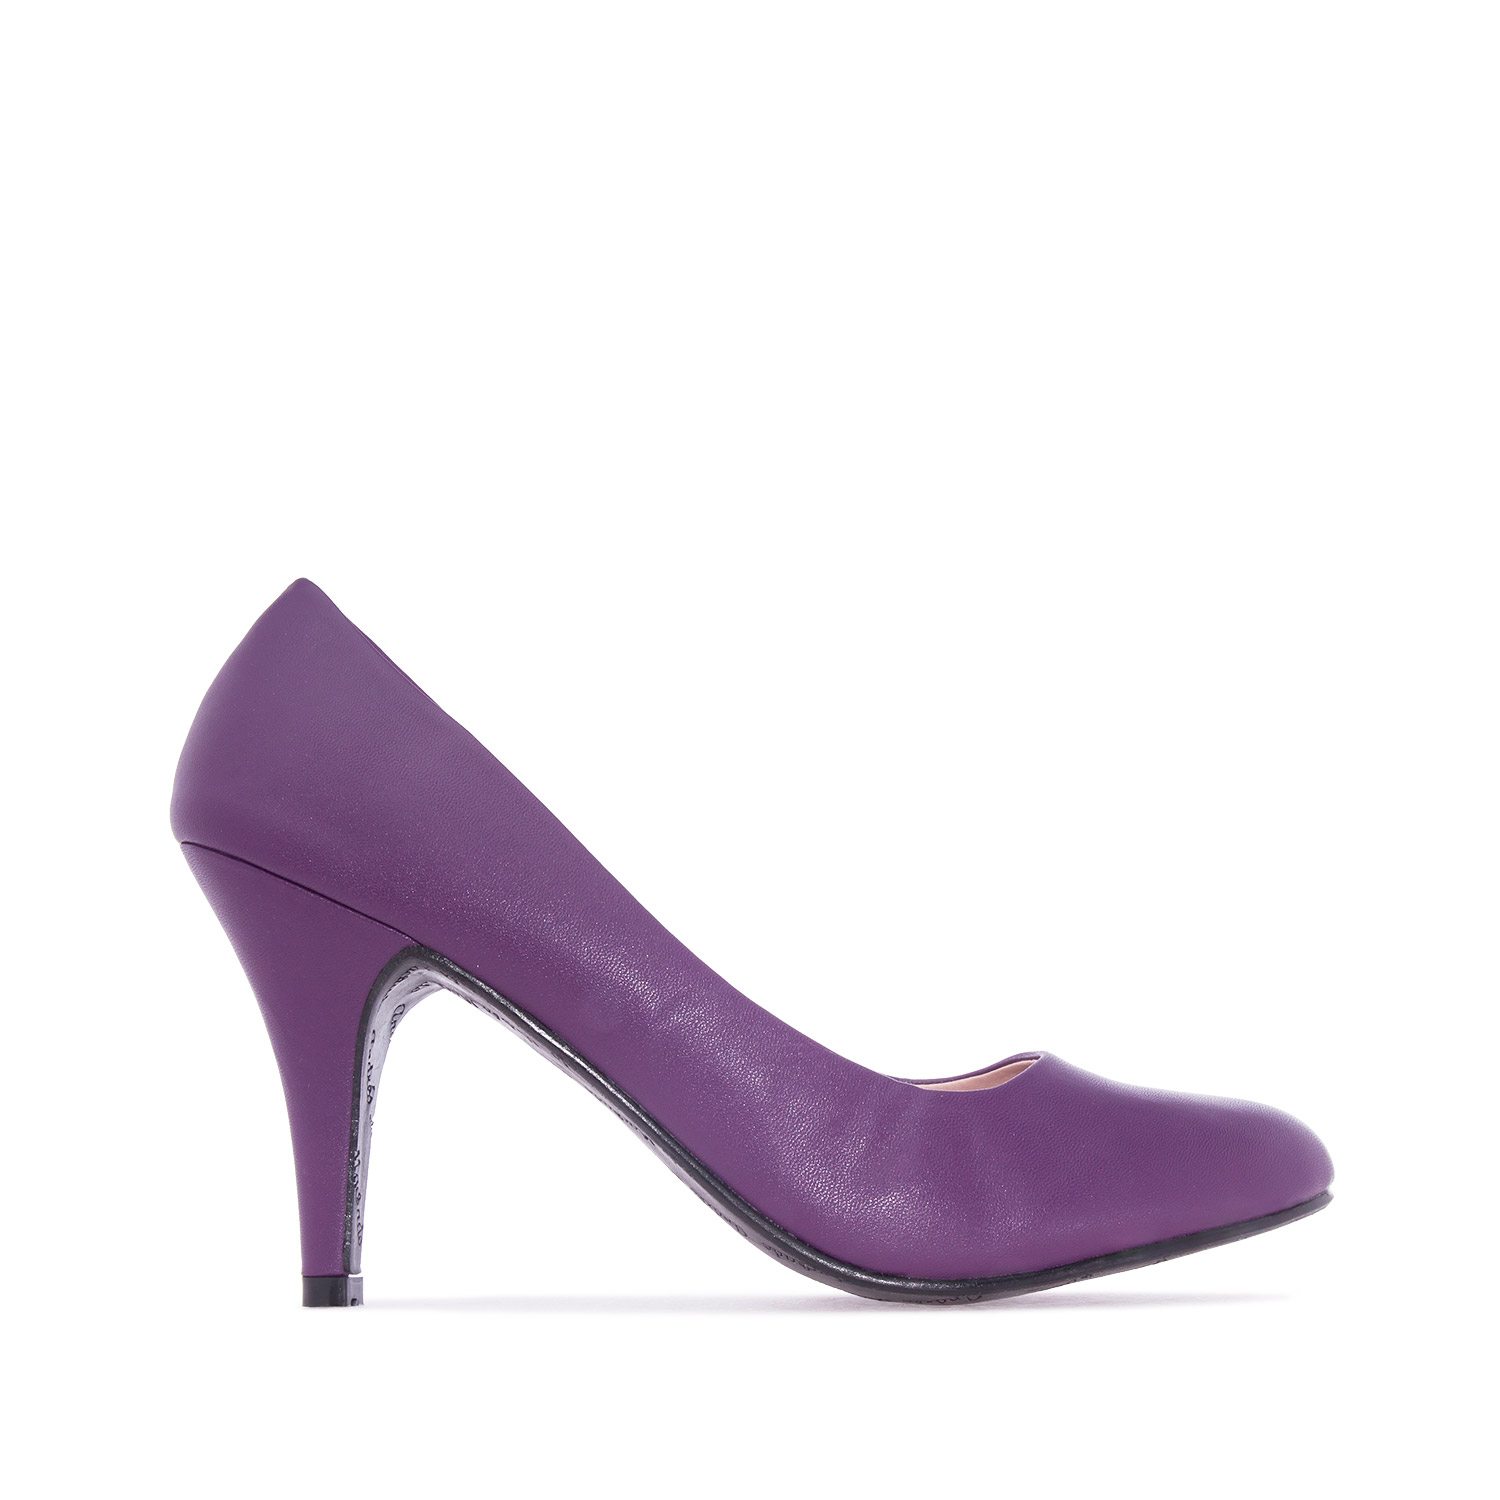 Retro High Heel Pumps in Purple faux Leather